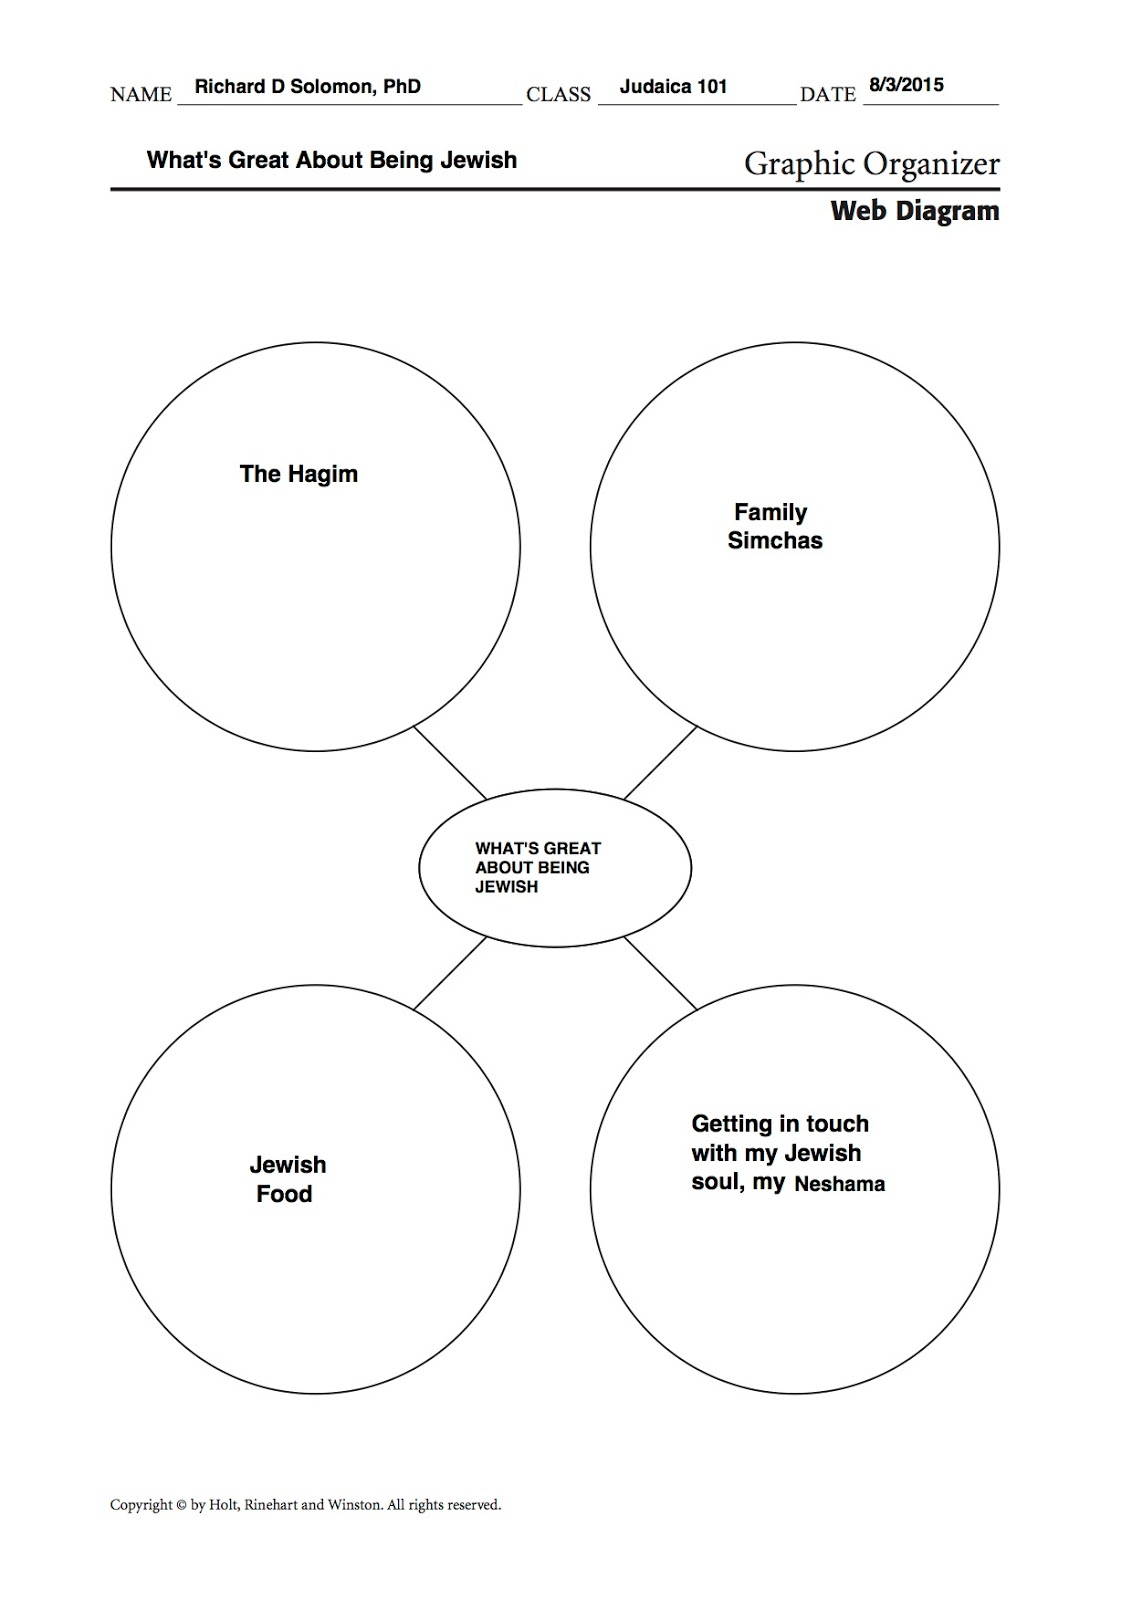 Web Diagram Graphic Organizer Opel Astra H Abs Wiring Richard D Solomon 39s Blog On Mentoring Jewish Students And